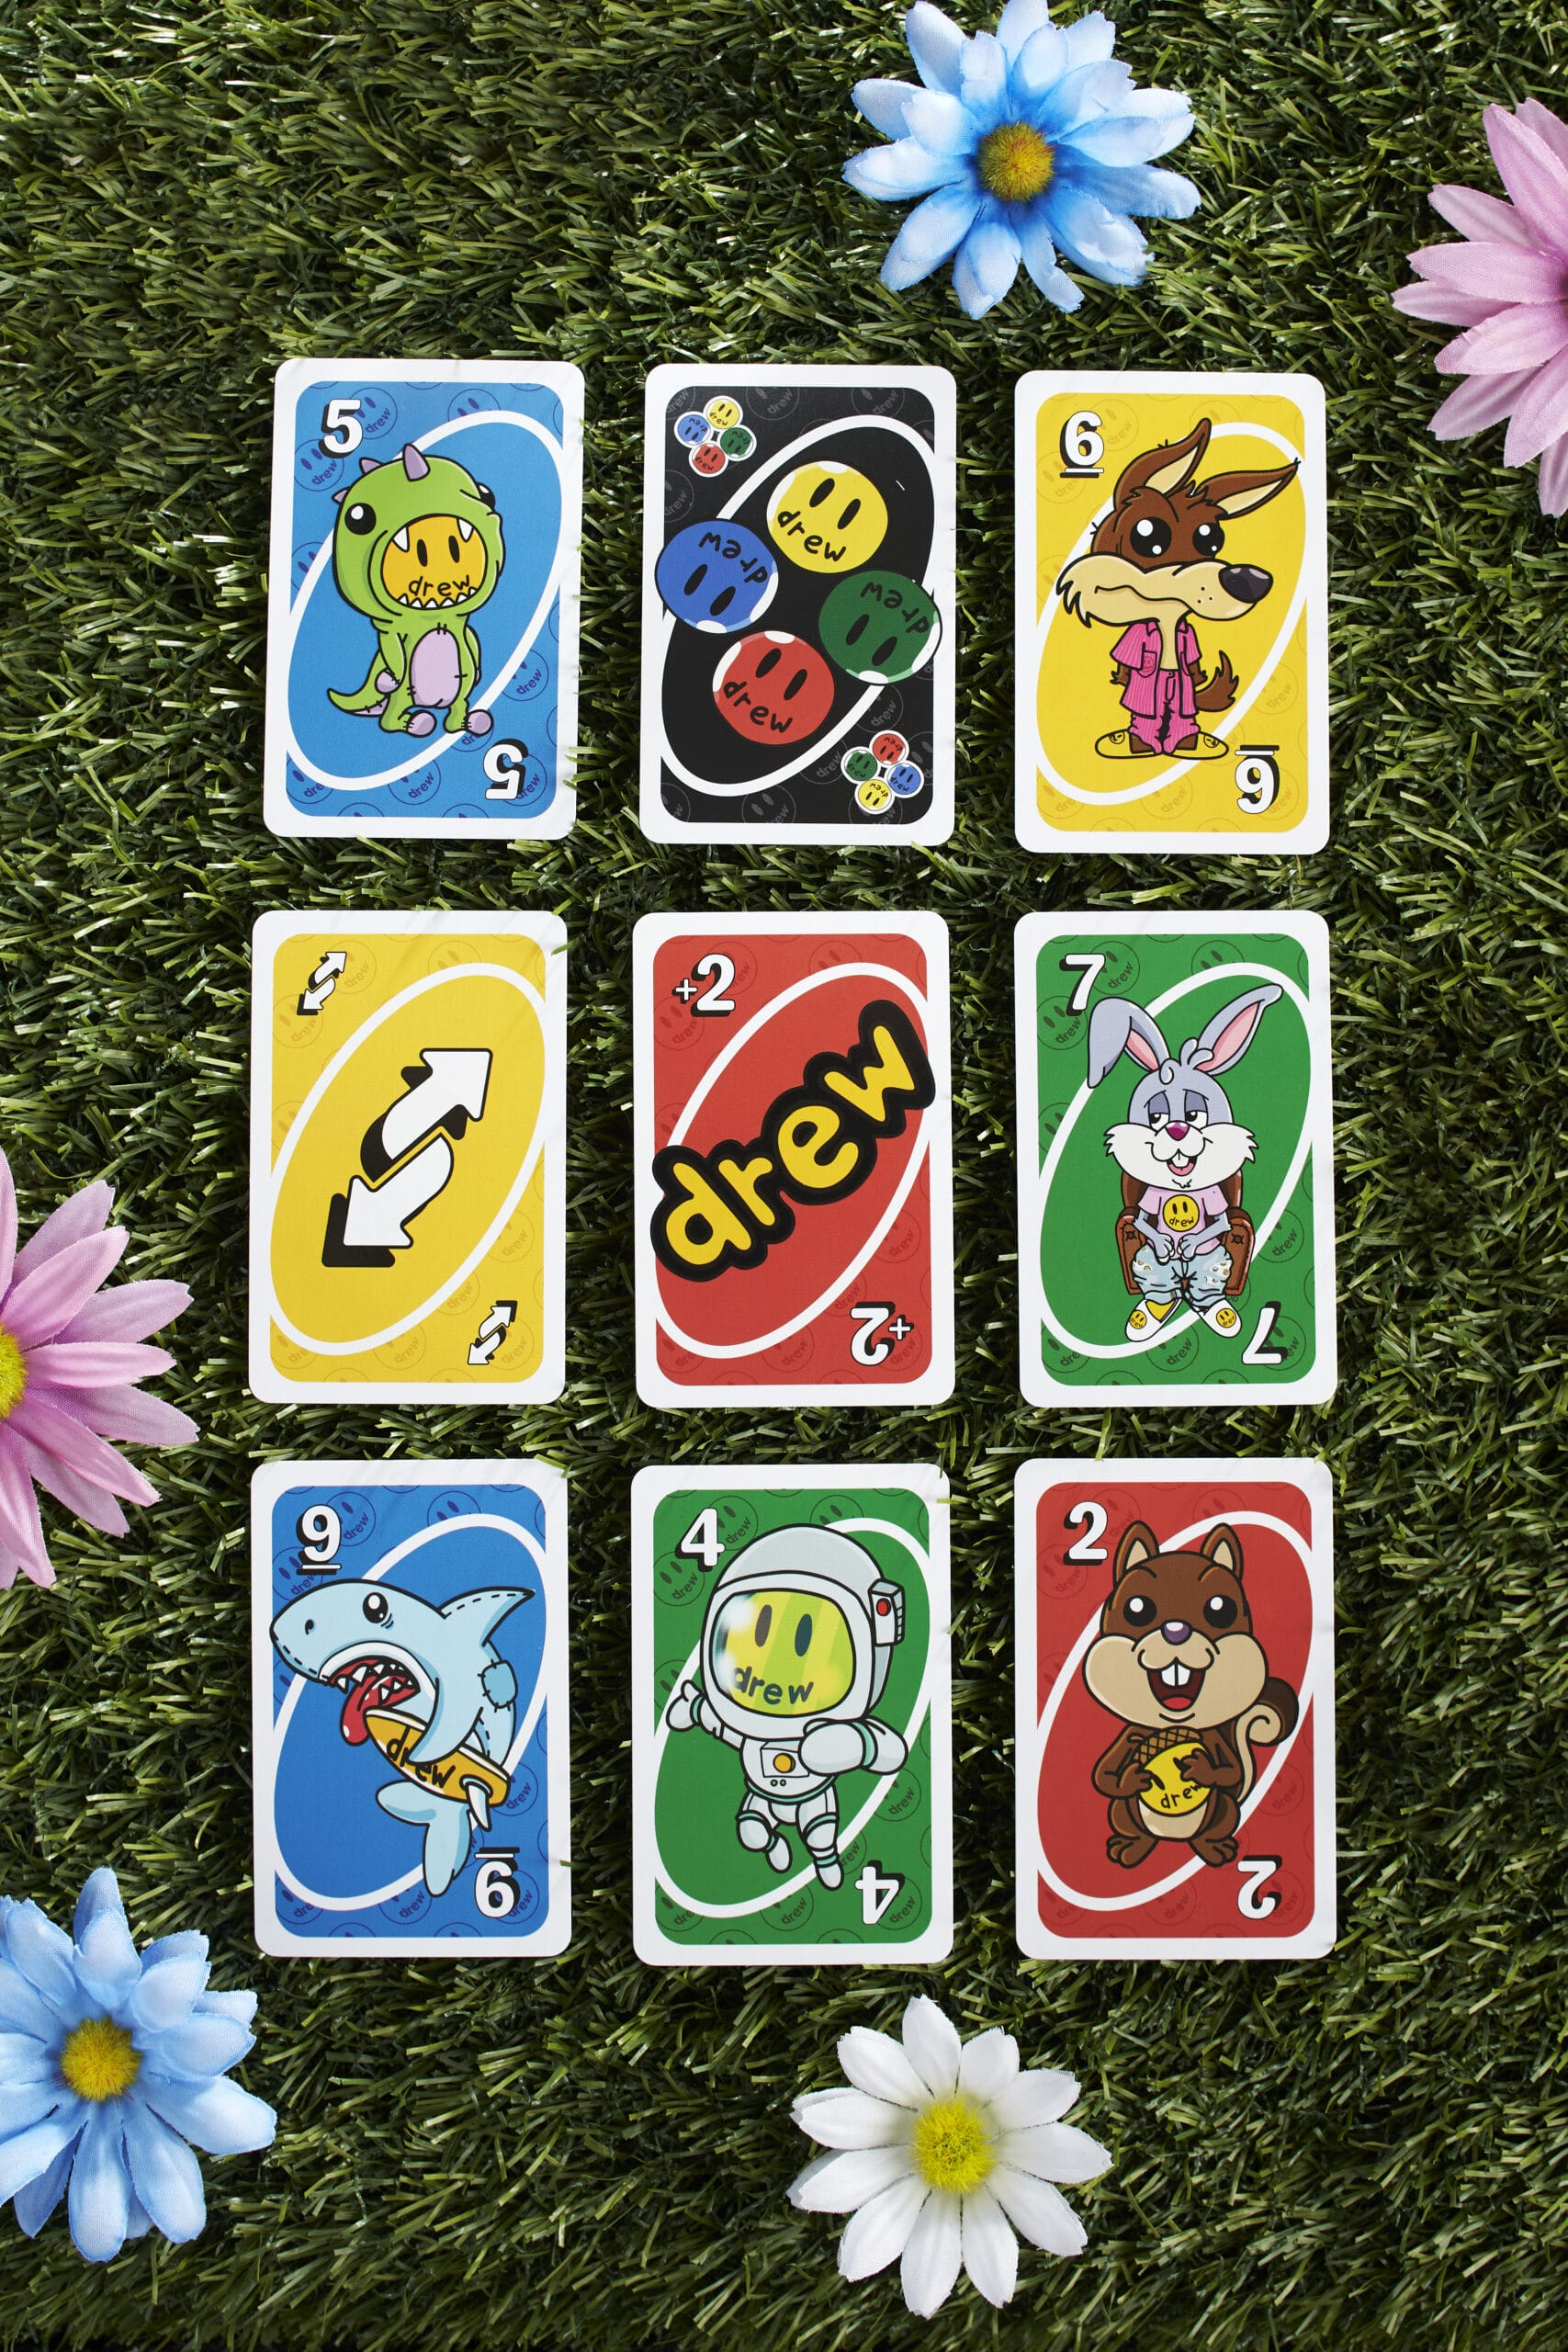 UNO teams up with Justin Bieber's drew house for a limited-edition card deck 15